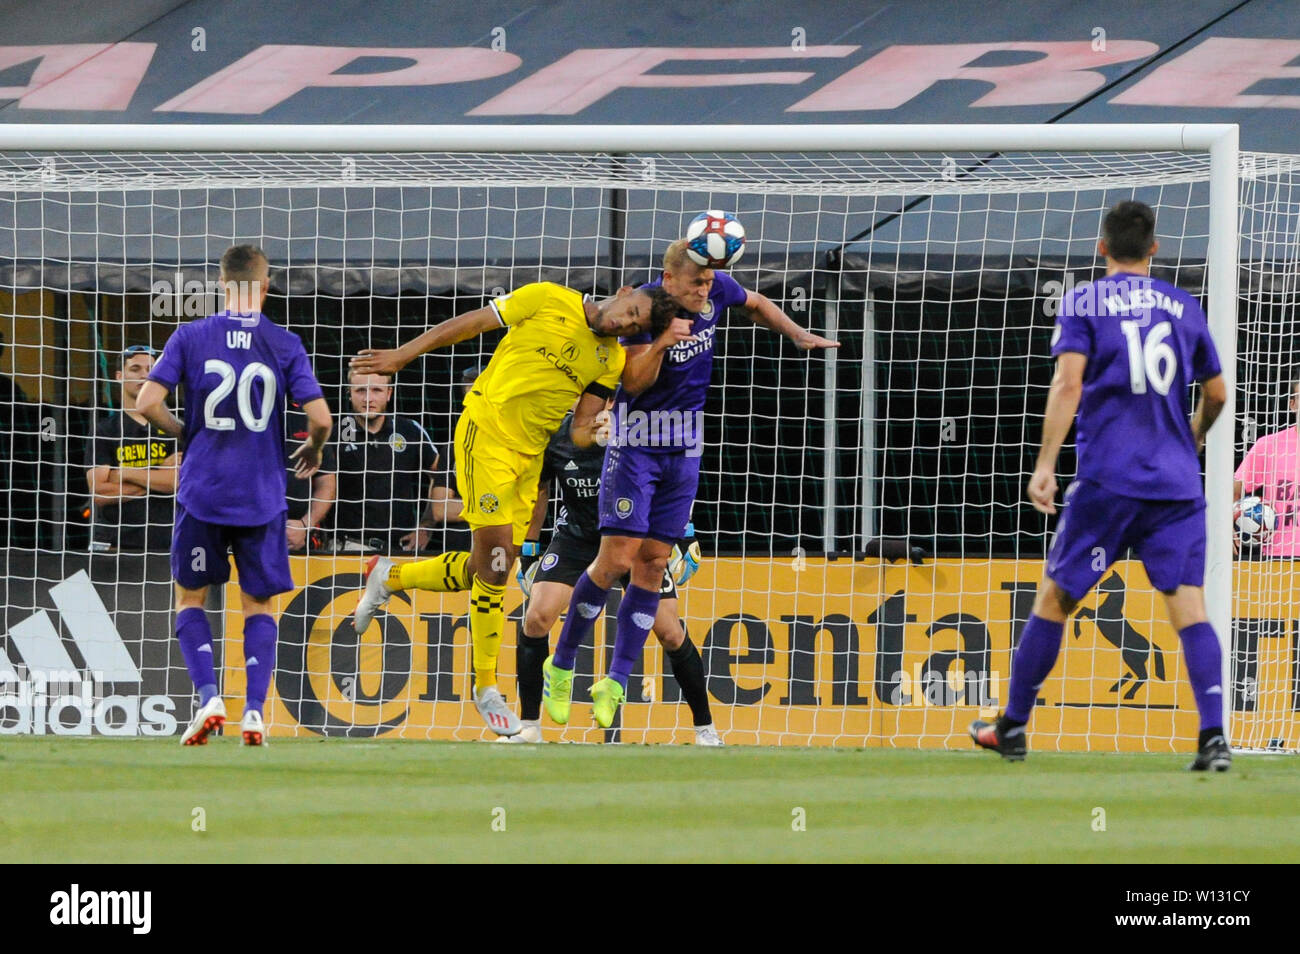 Saturday, June 29, 2019: Columbus Crew SC forward JJ Williams (33) and Orlando City defender Robin Jansson (6) bump heads in the first half of the match between Orlando City and Columbus Crew SC at MAPFRE Stadium, in Columbus OH. Mandatory Photo Credit: Dorn Byg/Cal Sport Media. Orlando City 2 - Columbus Crew SC 0 at the end of the match - Stock Image